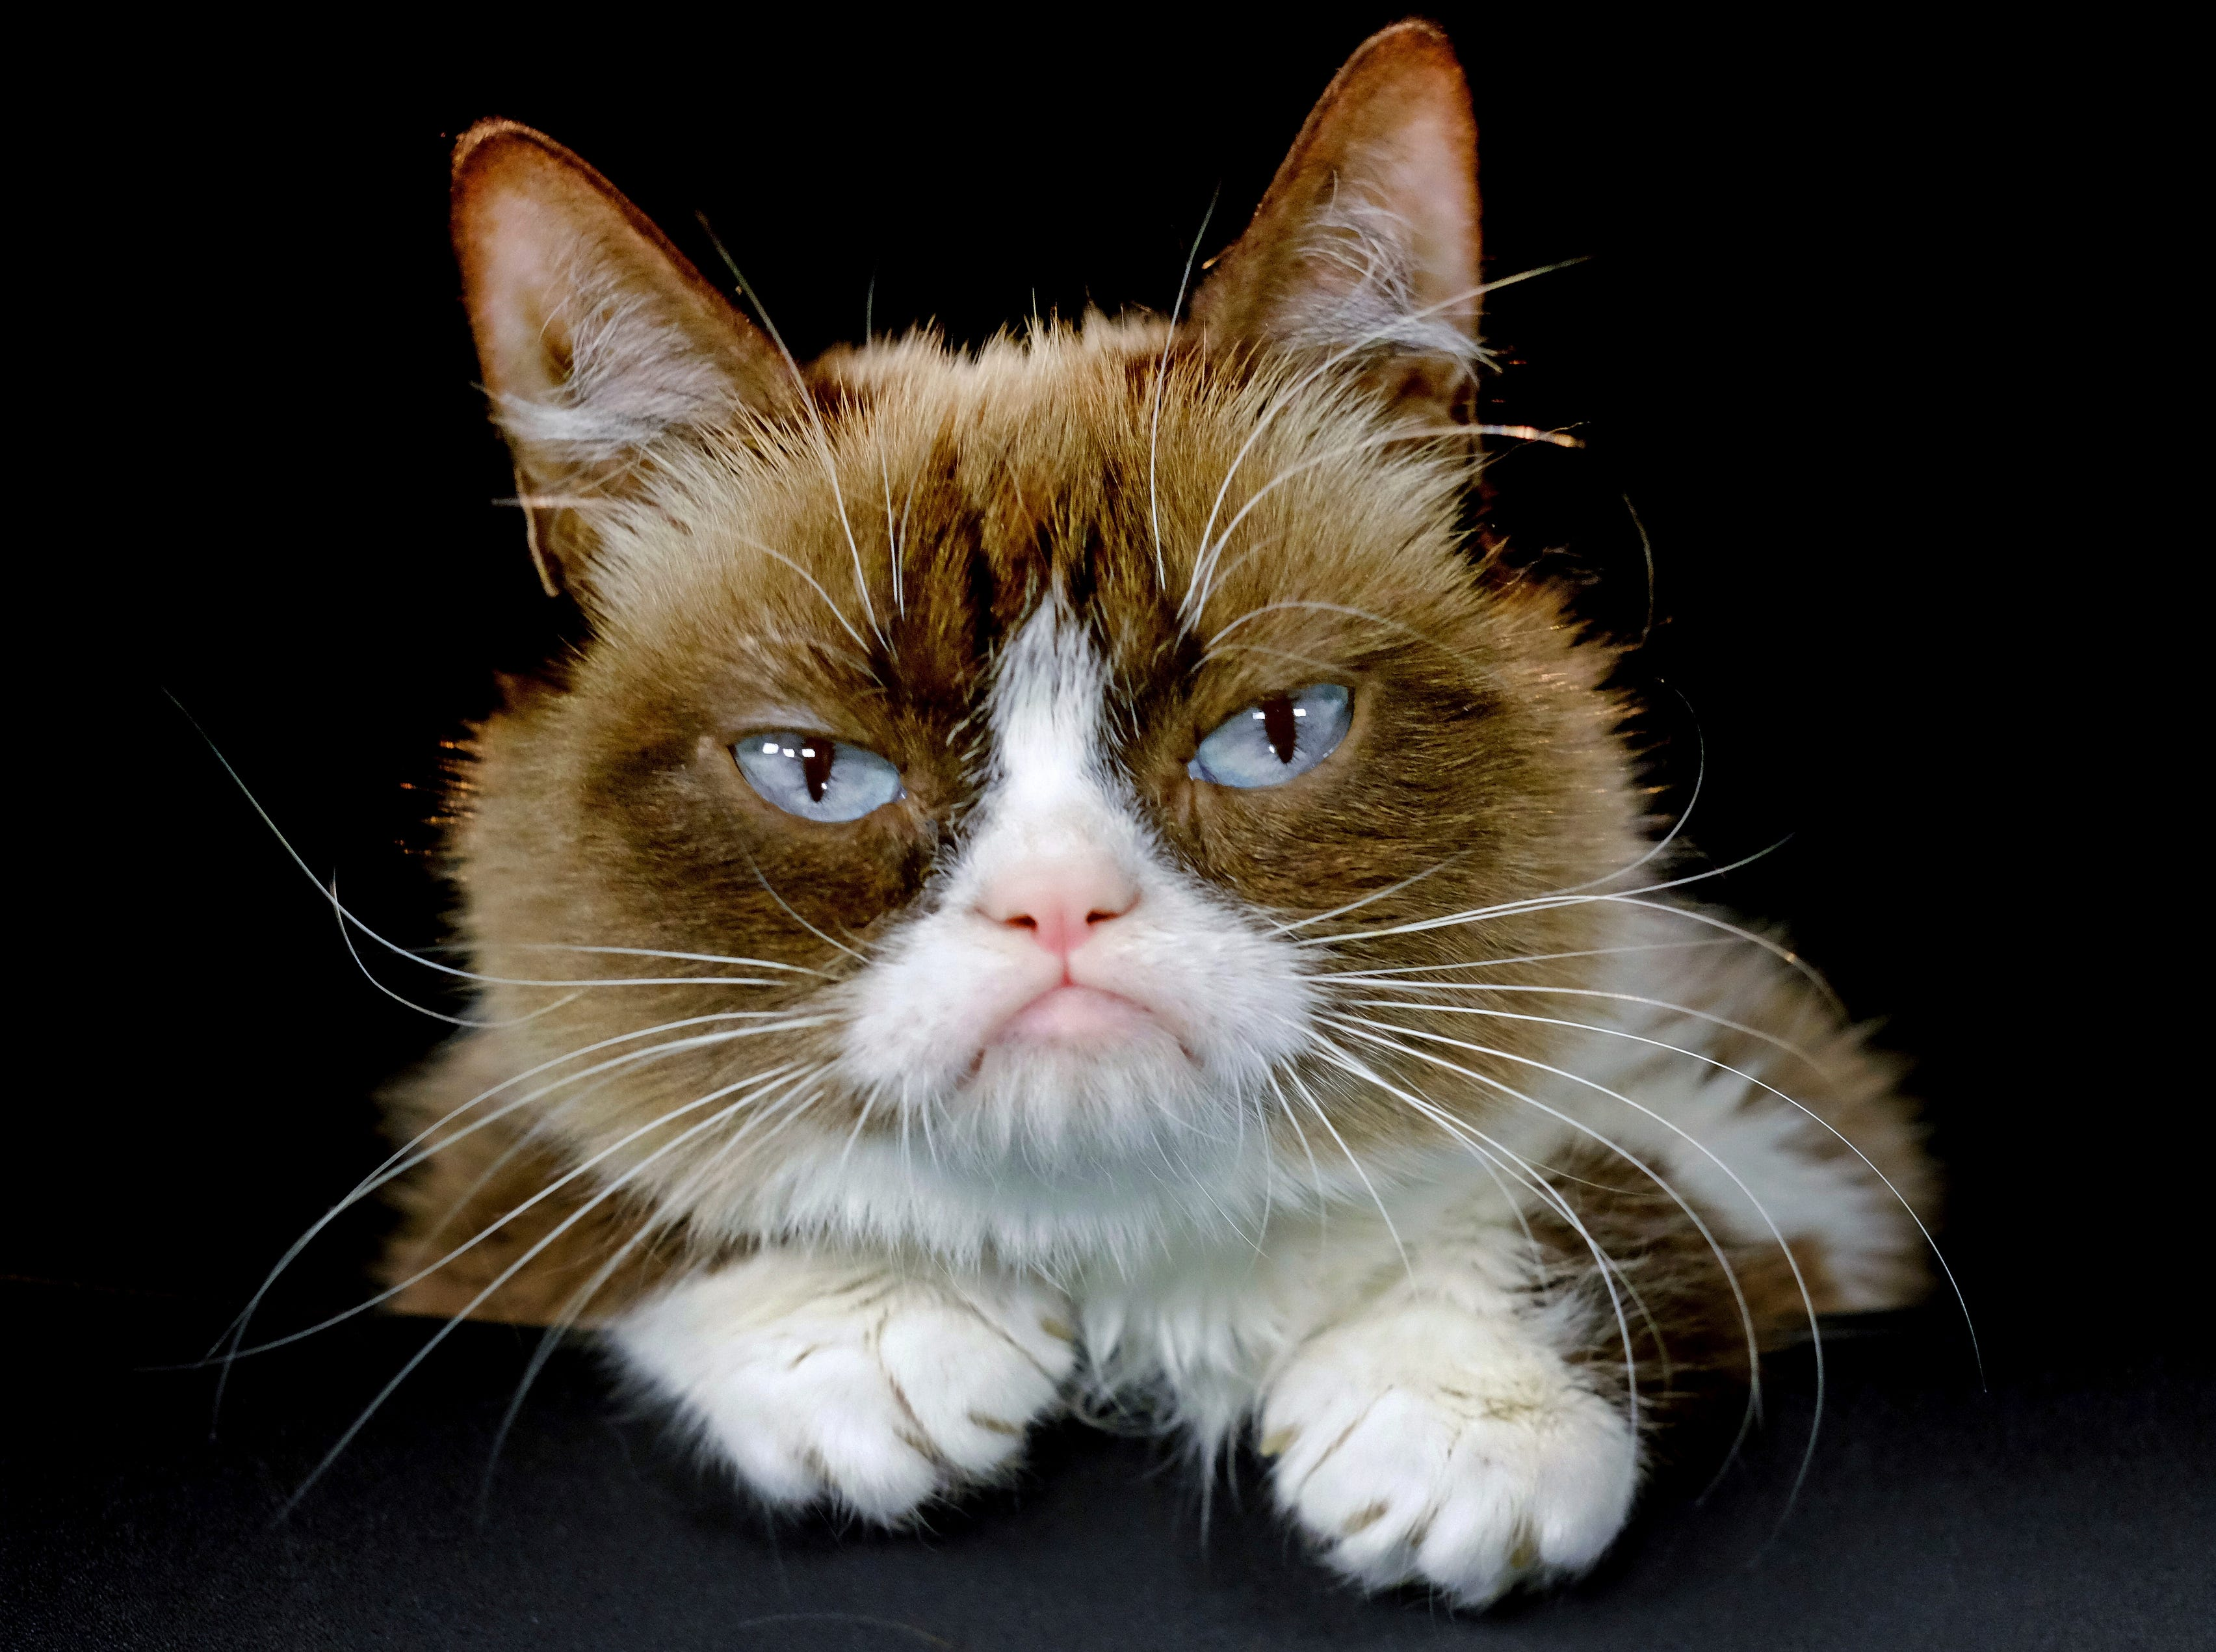 """This Dec. 1, 2015 file photo shows Grumpy Cat posing for a photo in Los Angeles. Grumpy Cat, whose sour puss became an internet sensation, has died at age 7, according to her owners. Posting on social media Friday, May 17, 2019, her owners wrote Grumpy experienced complications from a urinary tract infection and """"passed away peacefully"""" in the arms of her mother on Tuesday, May 14."""